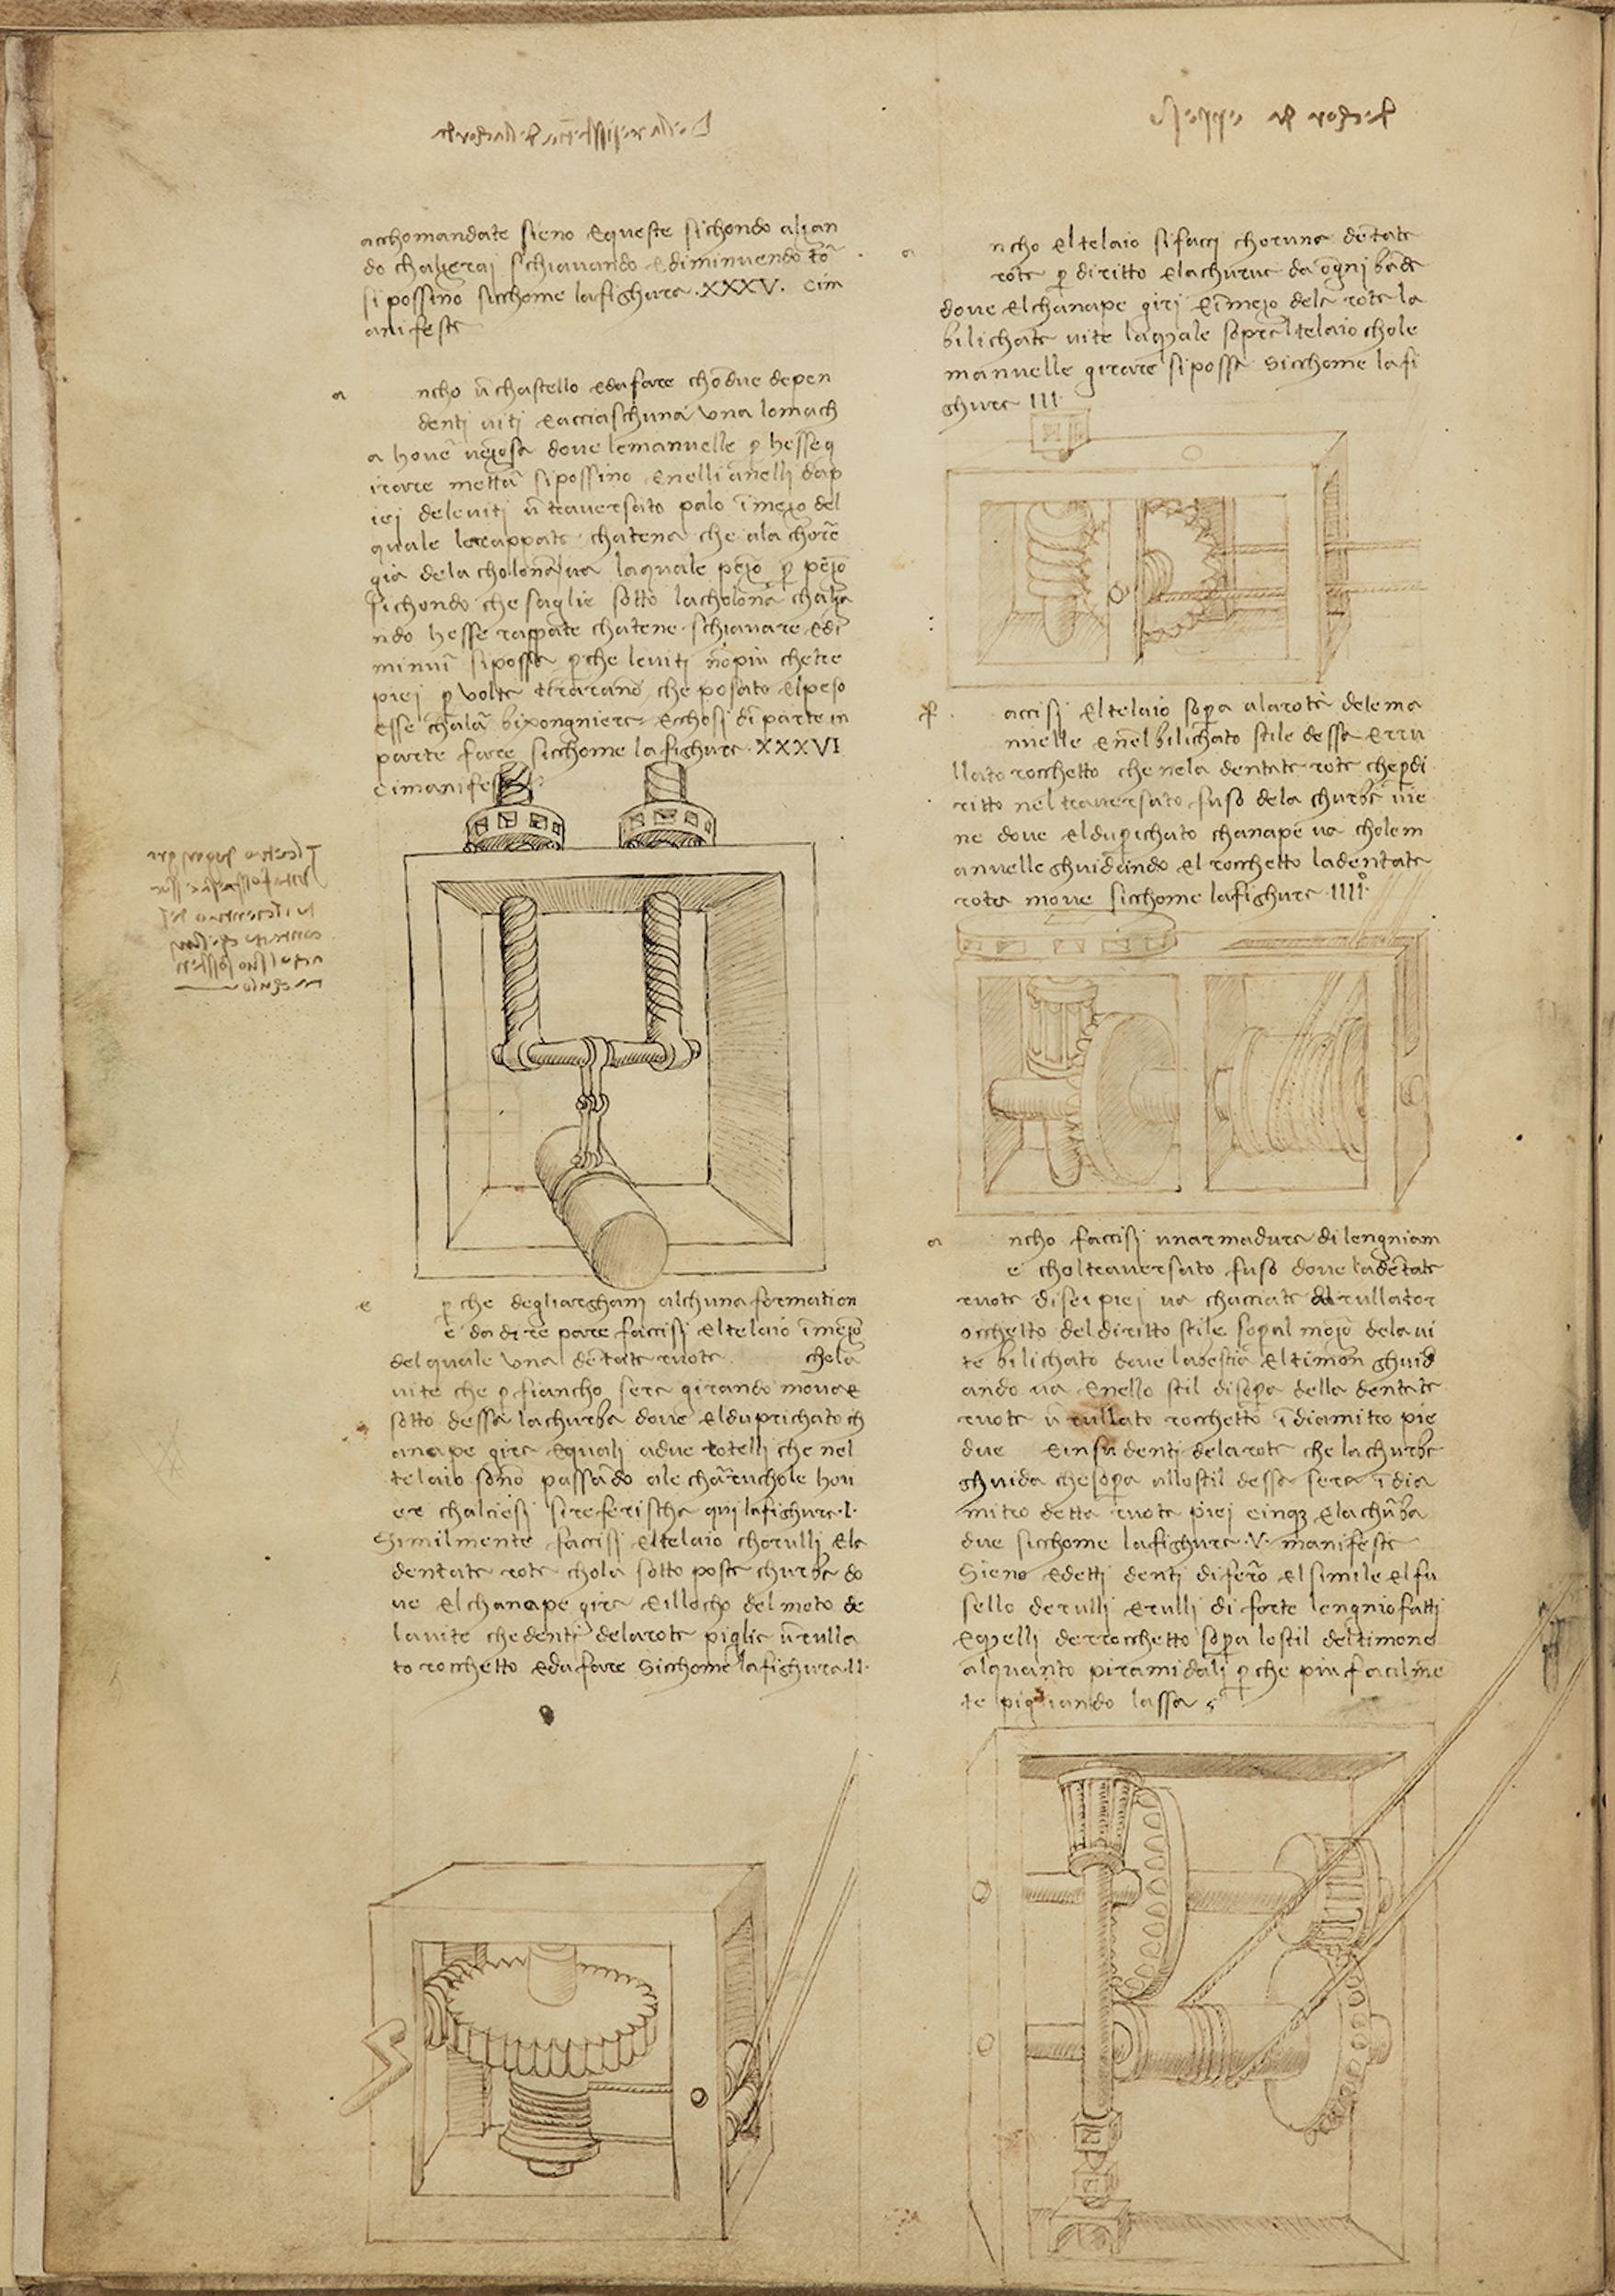 Francesco di Giorgio (Siena 1439-1501) e Leonardo da Vinci Trattato di architettura: tirari e alzari, con note autografe di Leonardo XV secolo  Codice Ashburnham, f. 44v  Biblioteca Medicea Laurenziana, Firenze I Francesco di Giorgio (Siena 1439-1501) and Leonardo da Vinci Treatise on Architecture: pullers and lifters with autographes notes by Leonardo 15th century parchment Codex Ashburnham, f. 44v  Biblioteca Medicea Laurenziana, Firenze